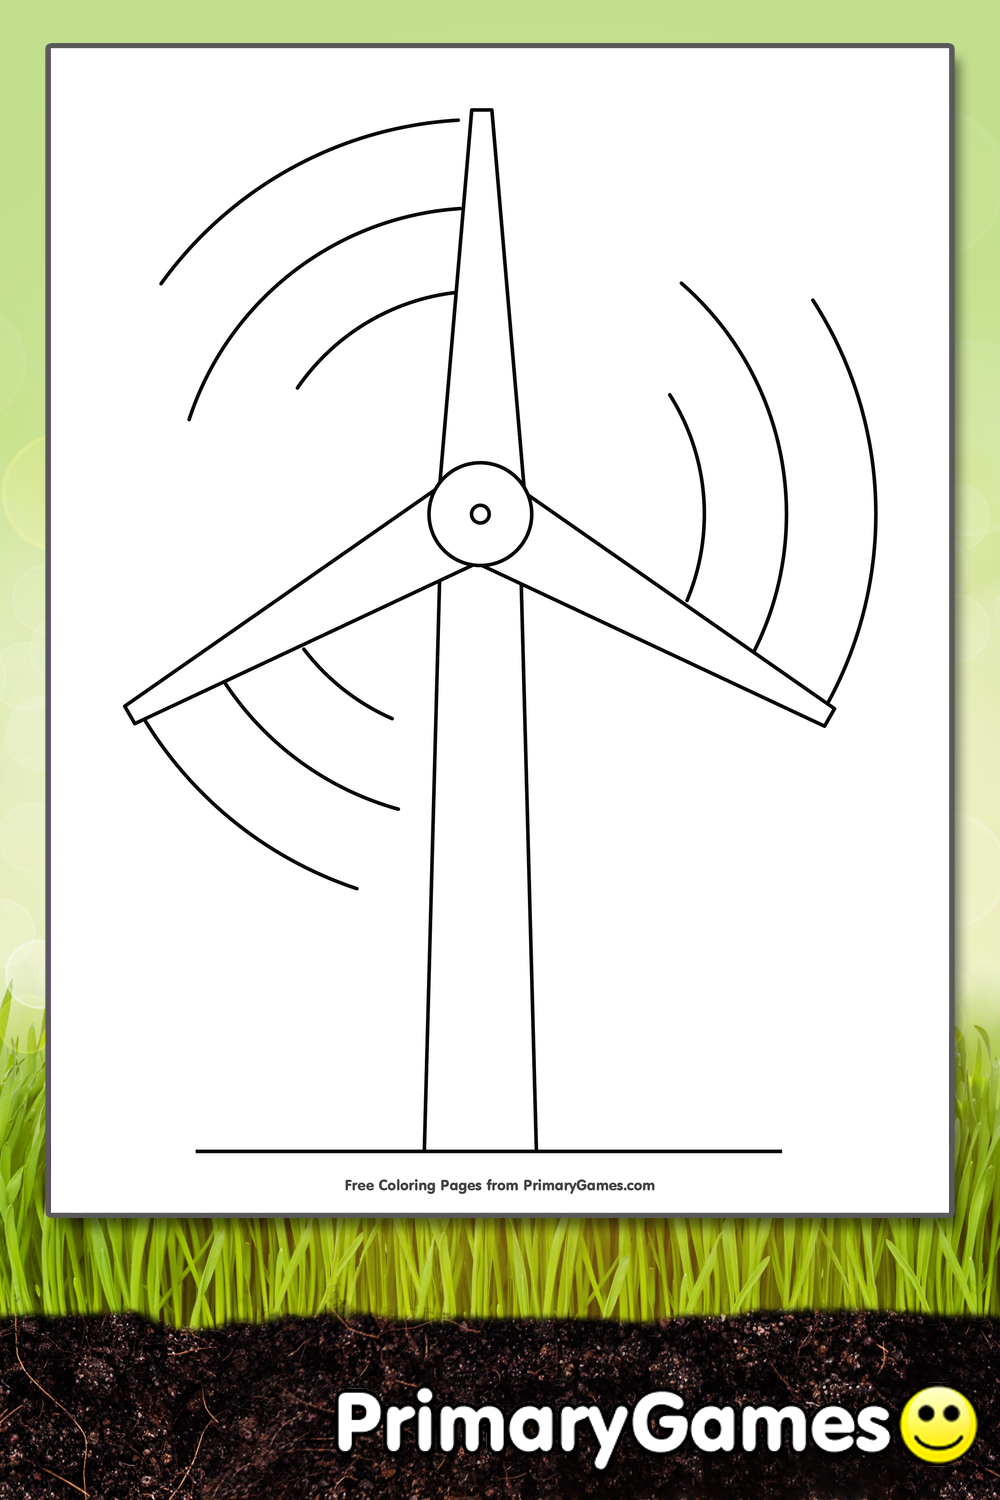 Wind Energy Turbine Coloring Page Printable Earth Day